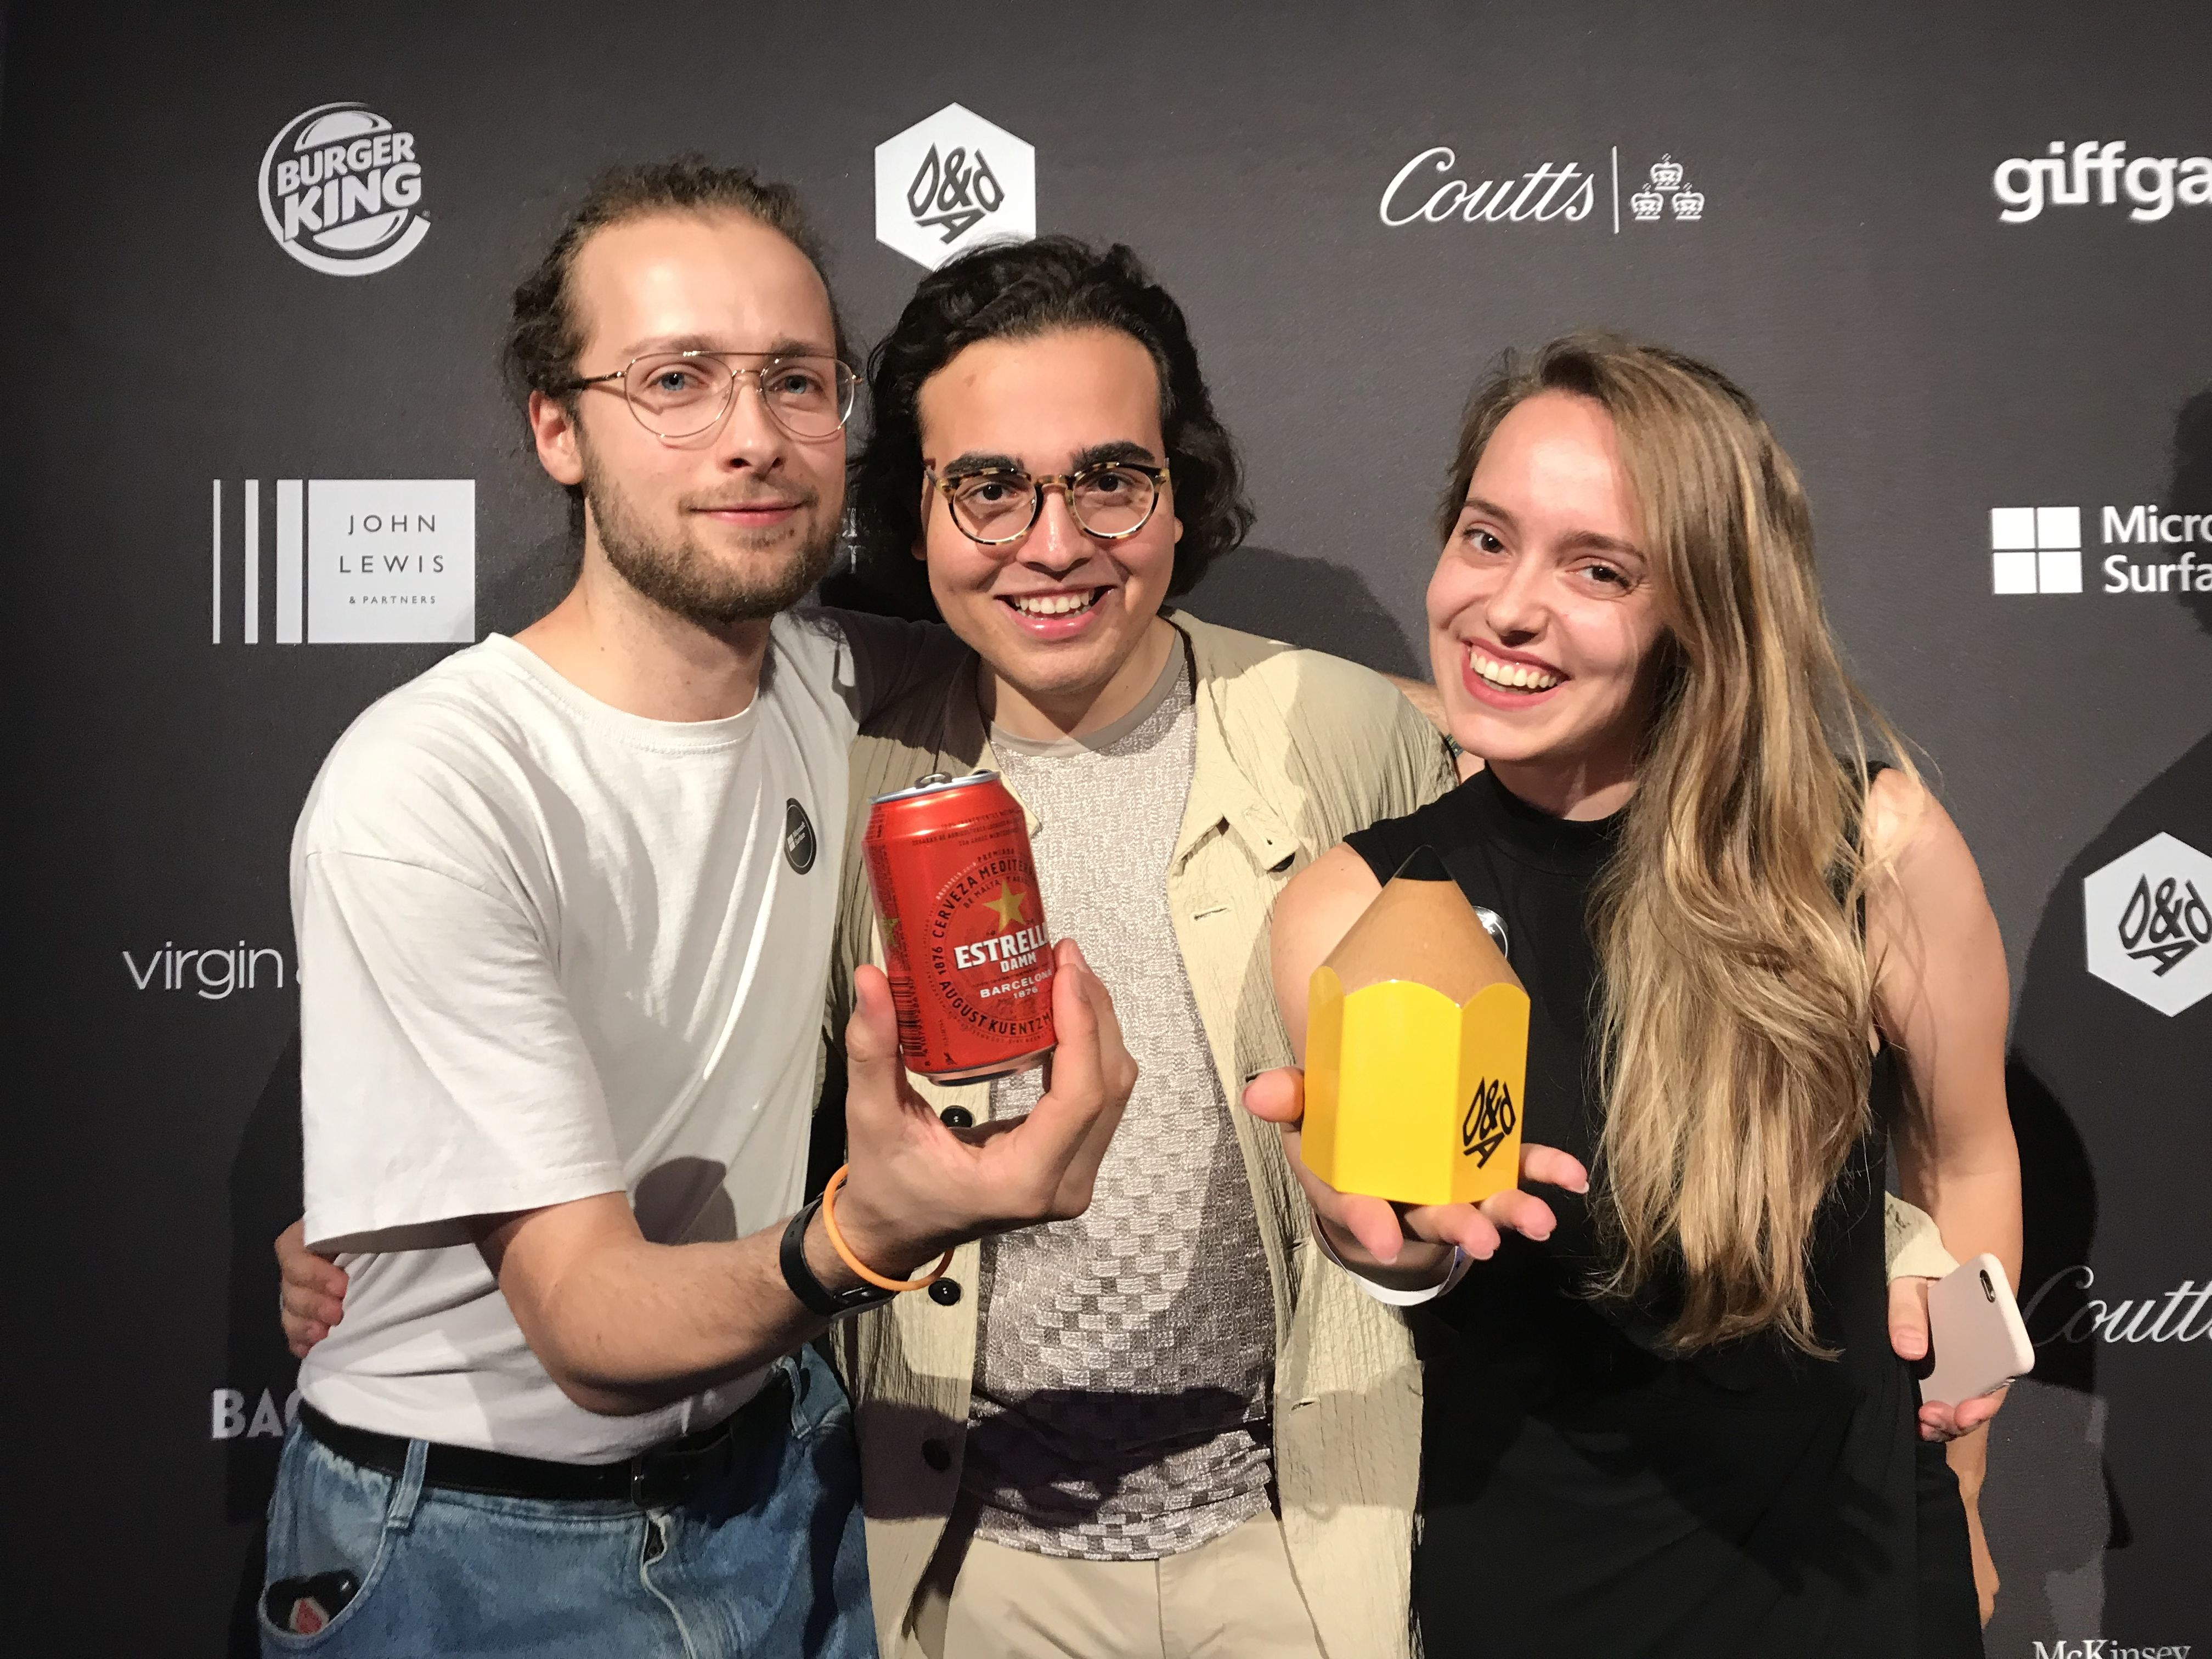 BA (Hons) Advertising students win D&AD New Blood Yellow Pencil for their brief